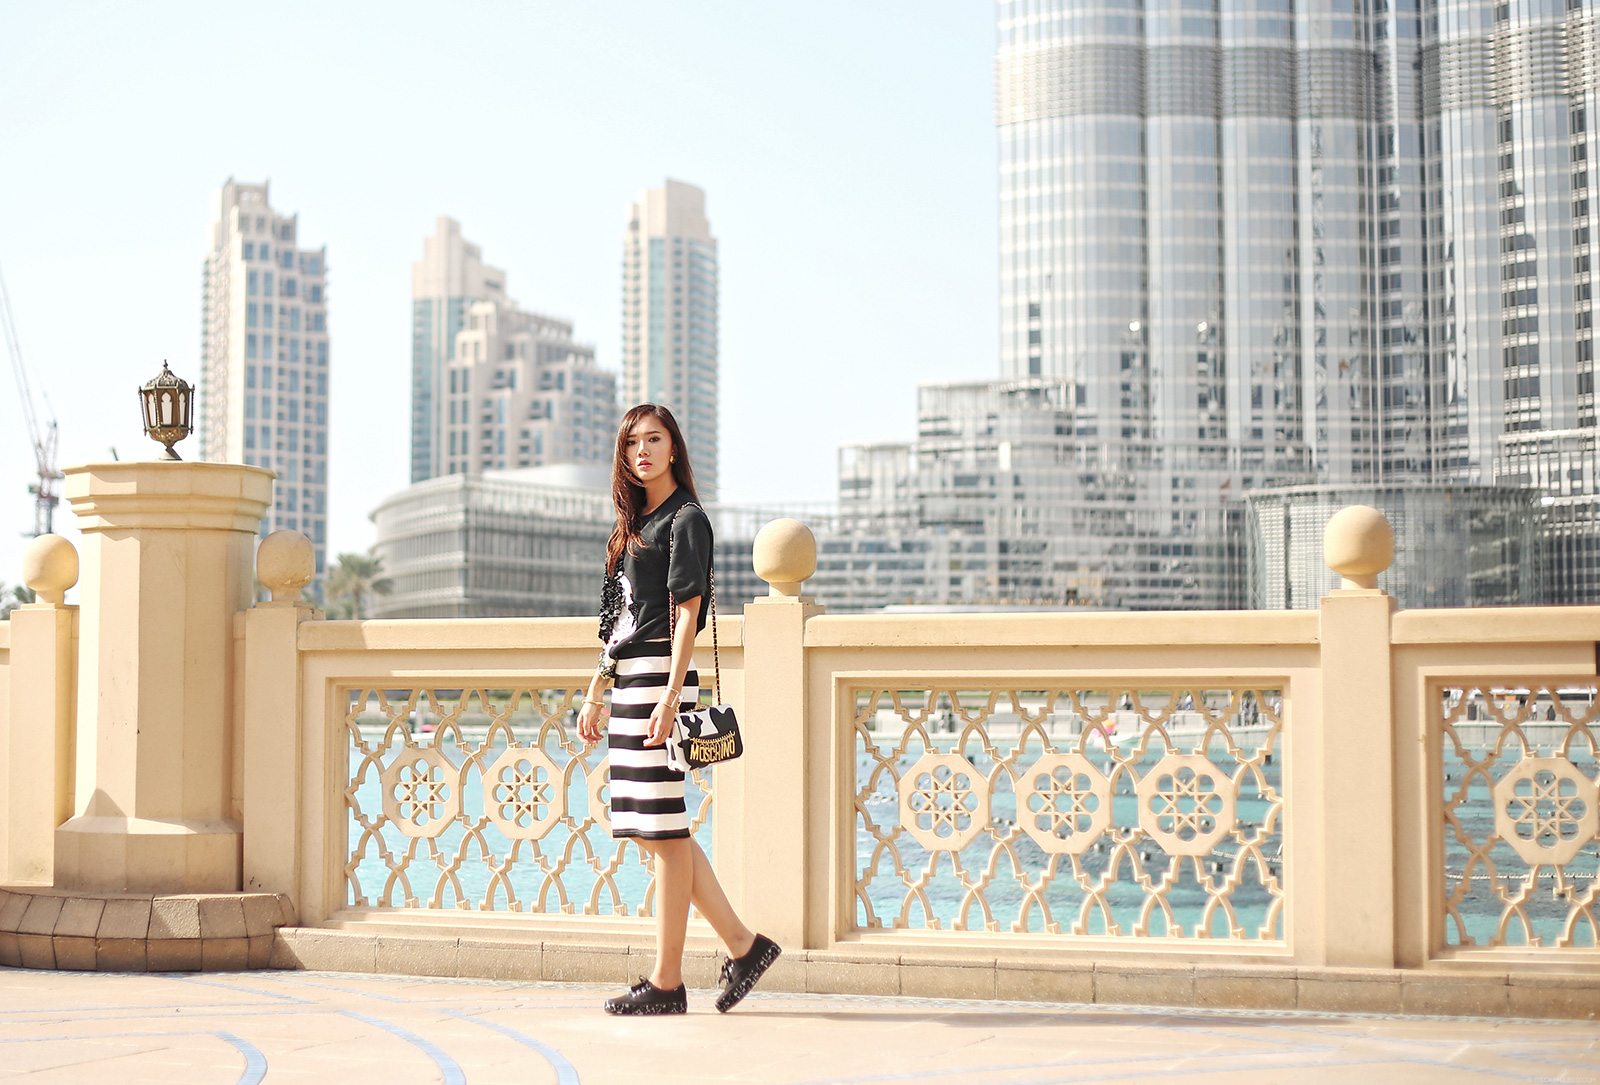 H&M Top, Details Skirt, Moschino bag, Keds shoes at Dubai Mall | www.itscamilleco.com